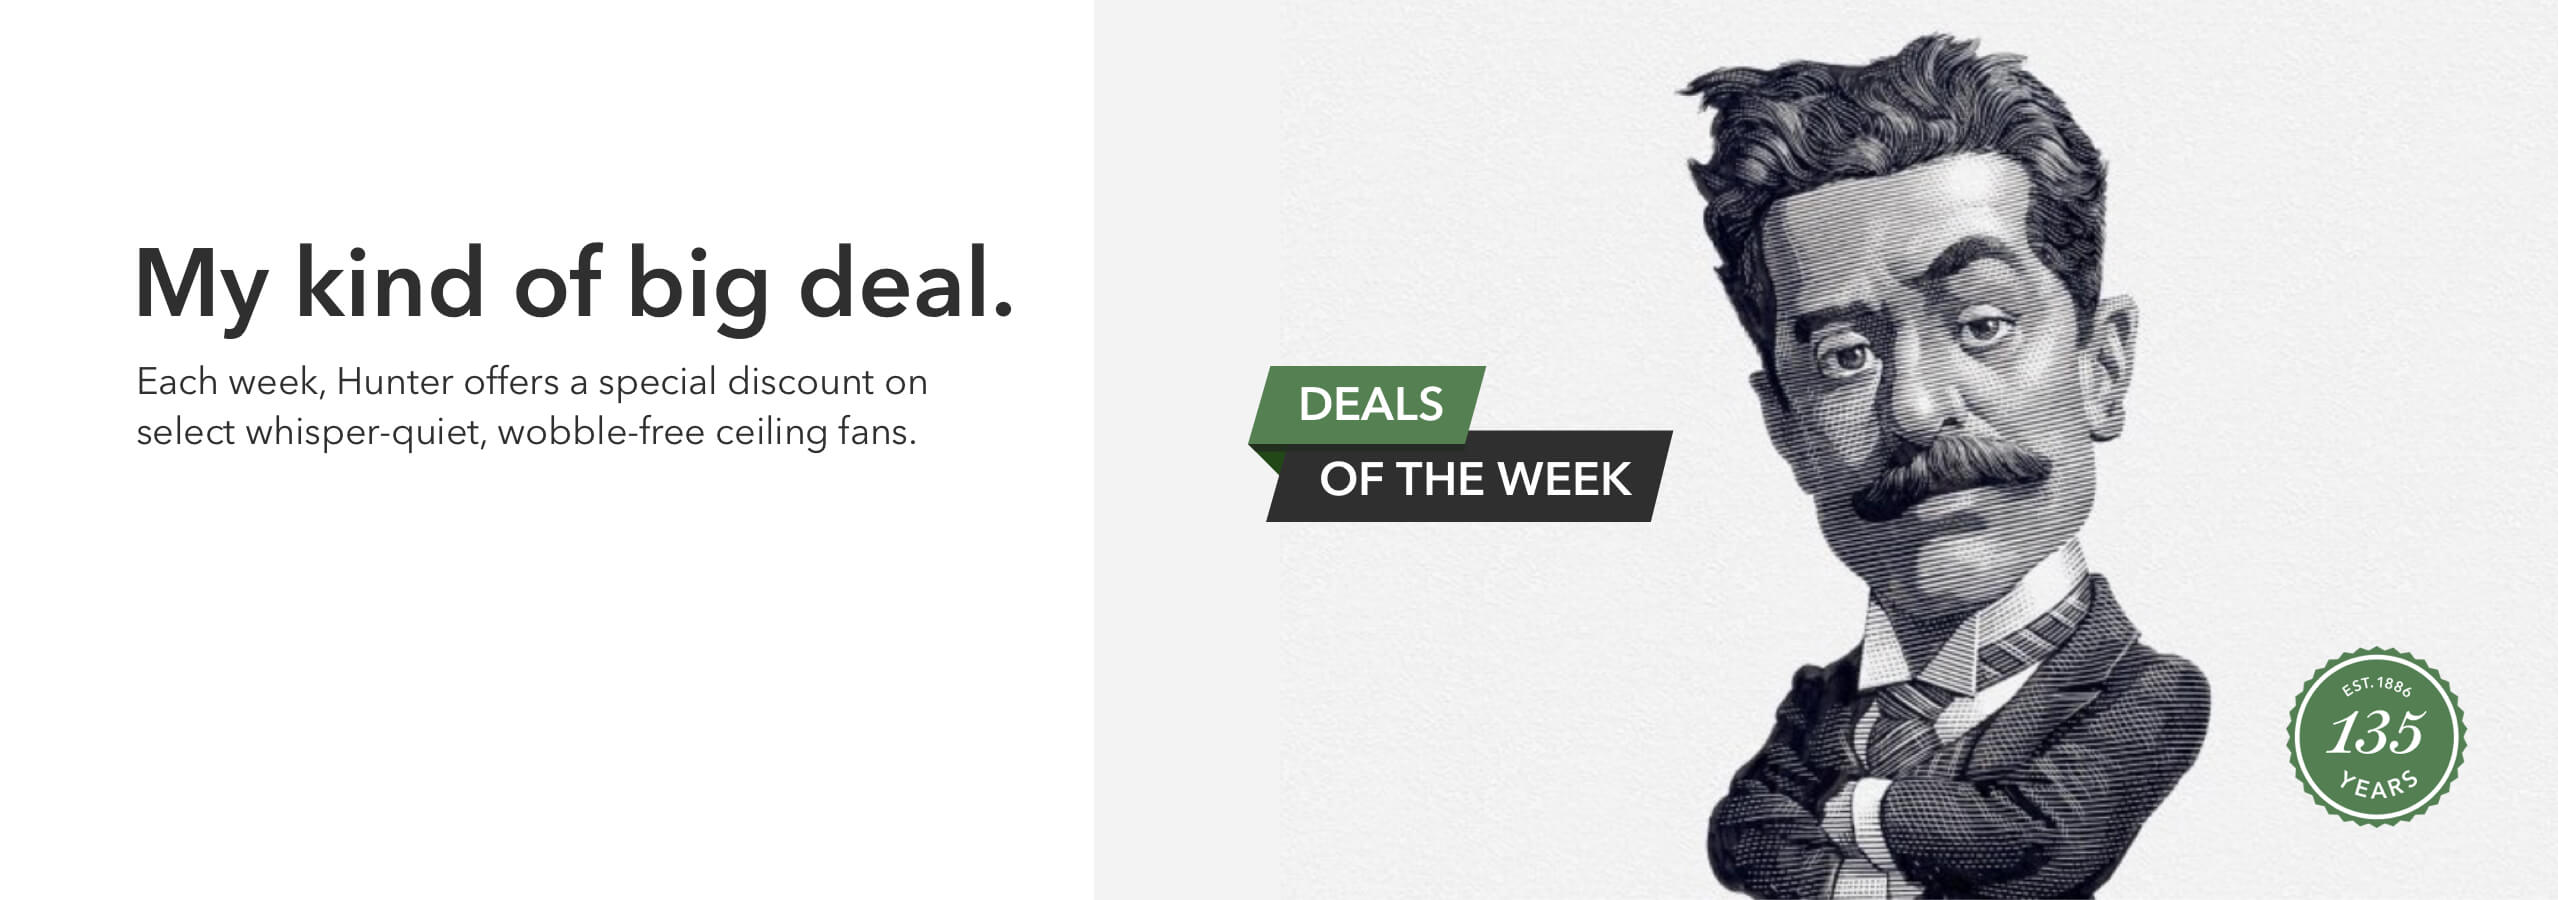 Deal of the week banner with illustration of John Hunter